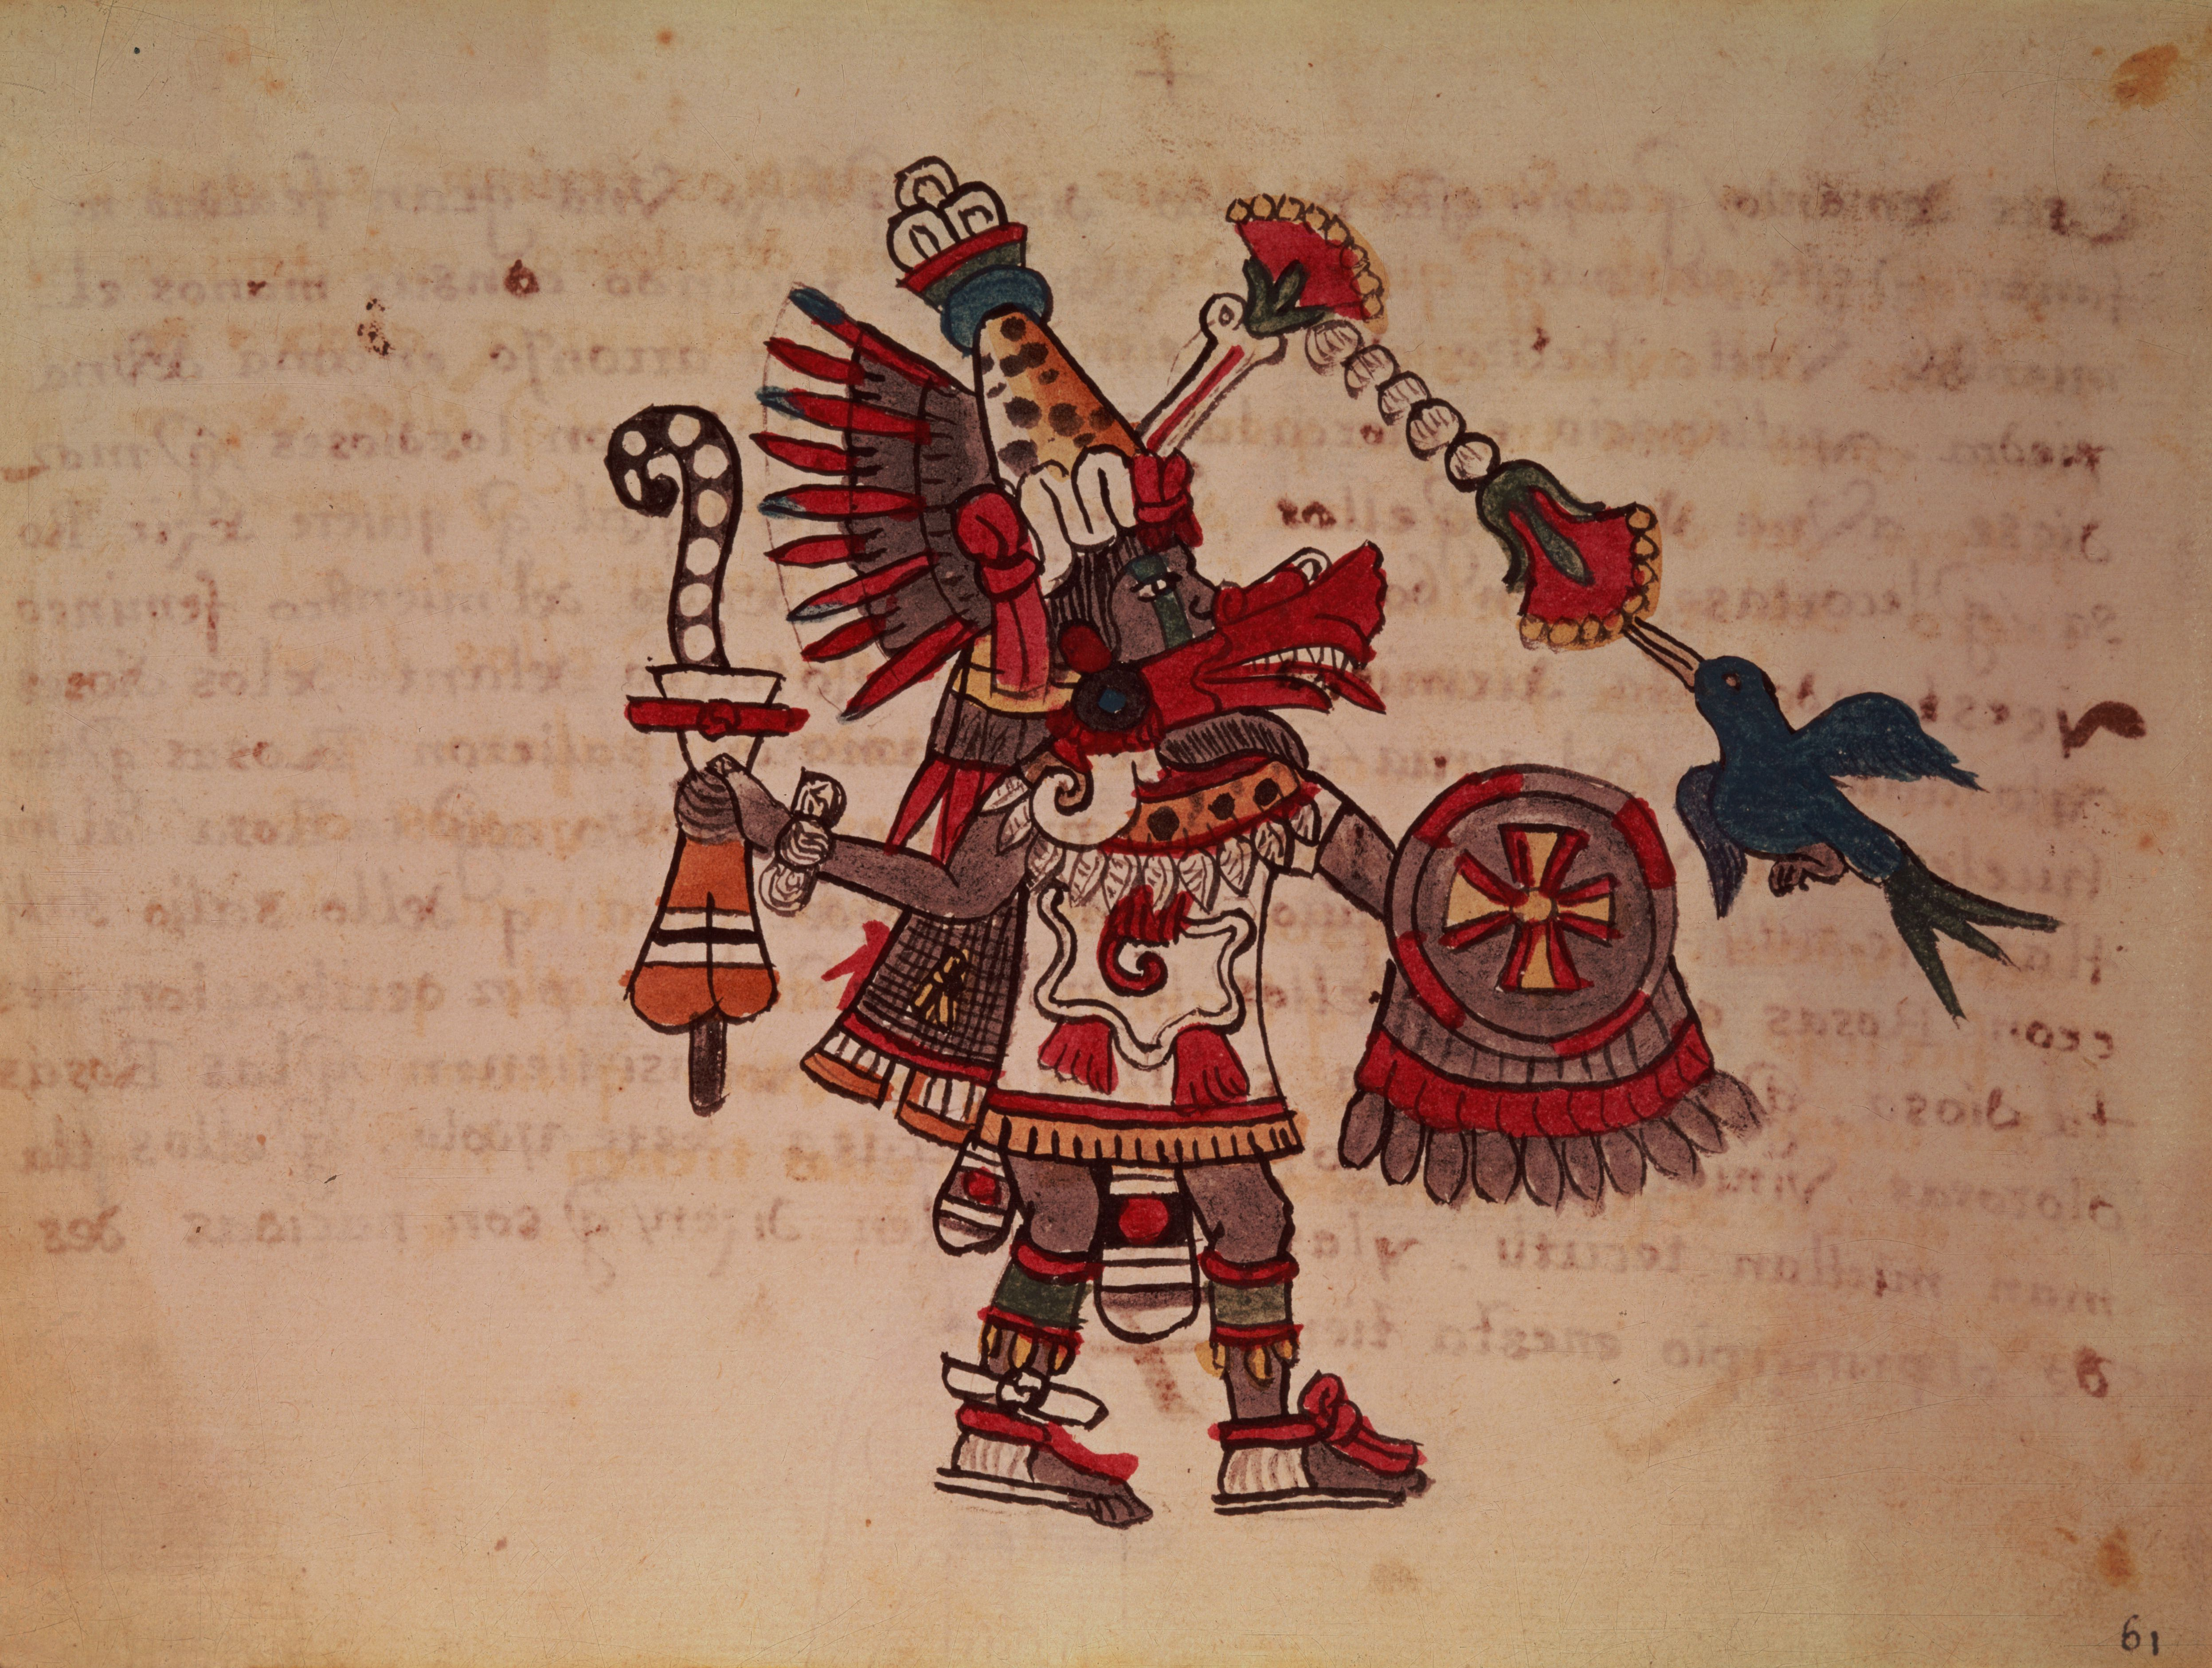 Quetzalcoatl, the Toltec and Aztec god; the plumed serpent, god of the wind, learning and the priesthood, master of life, creator and civiliser, patron of every art and inventor of metallurgy (manuscript)